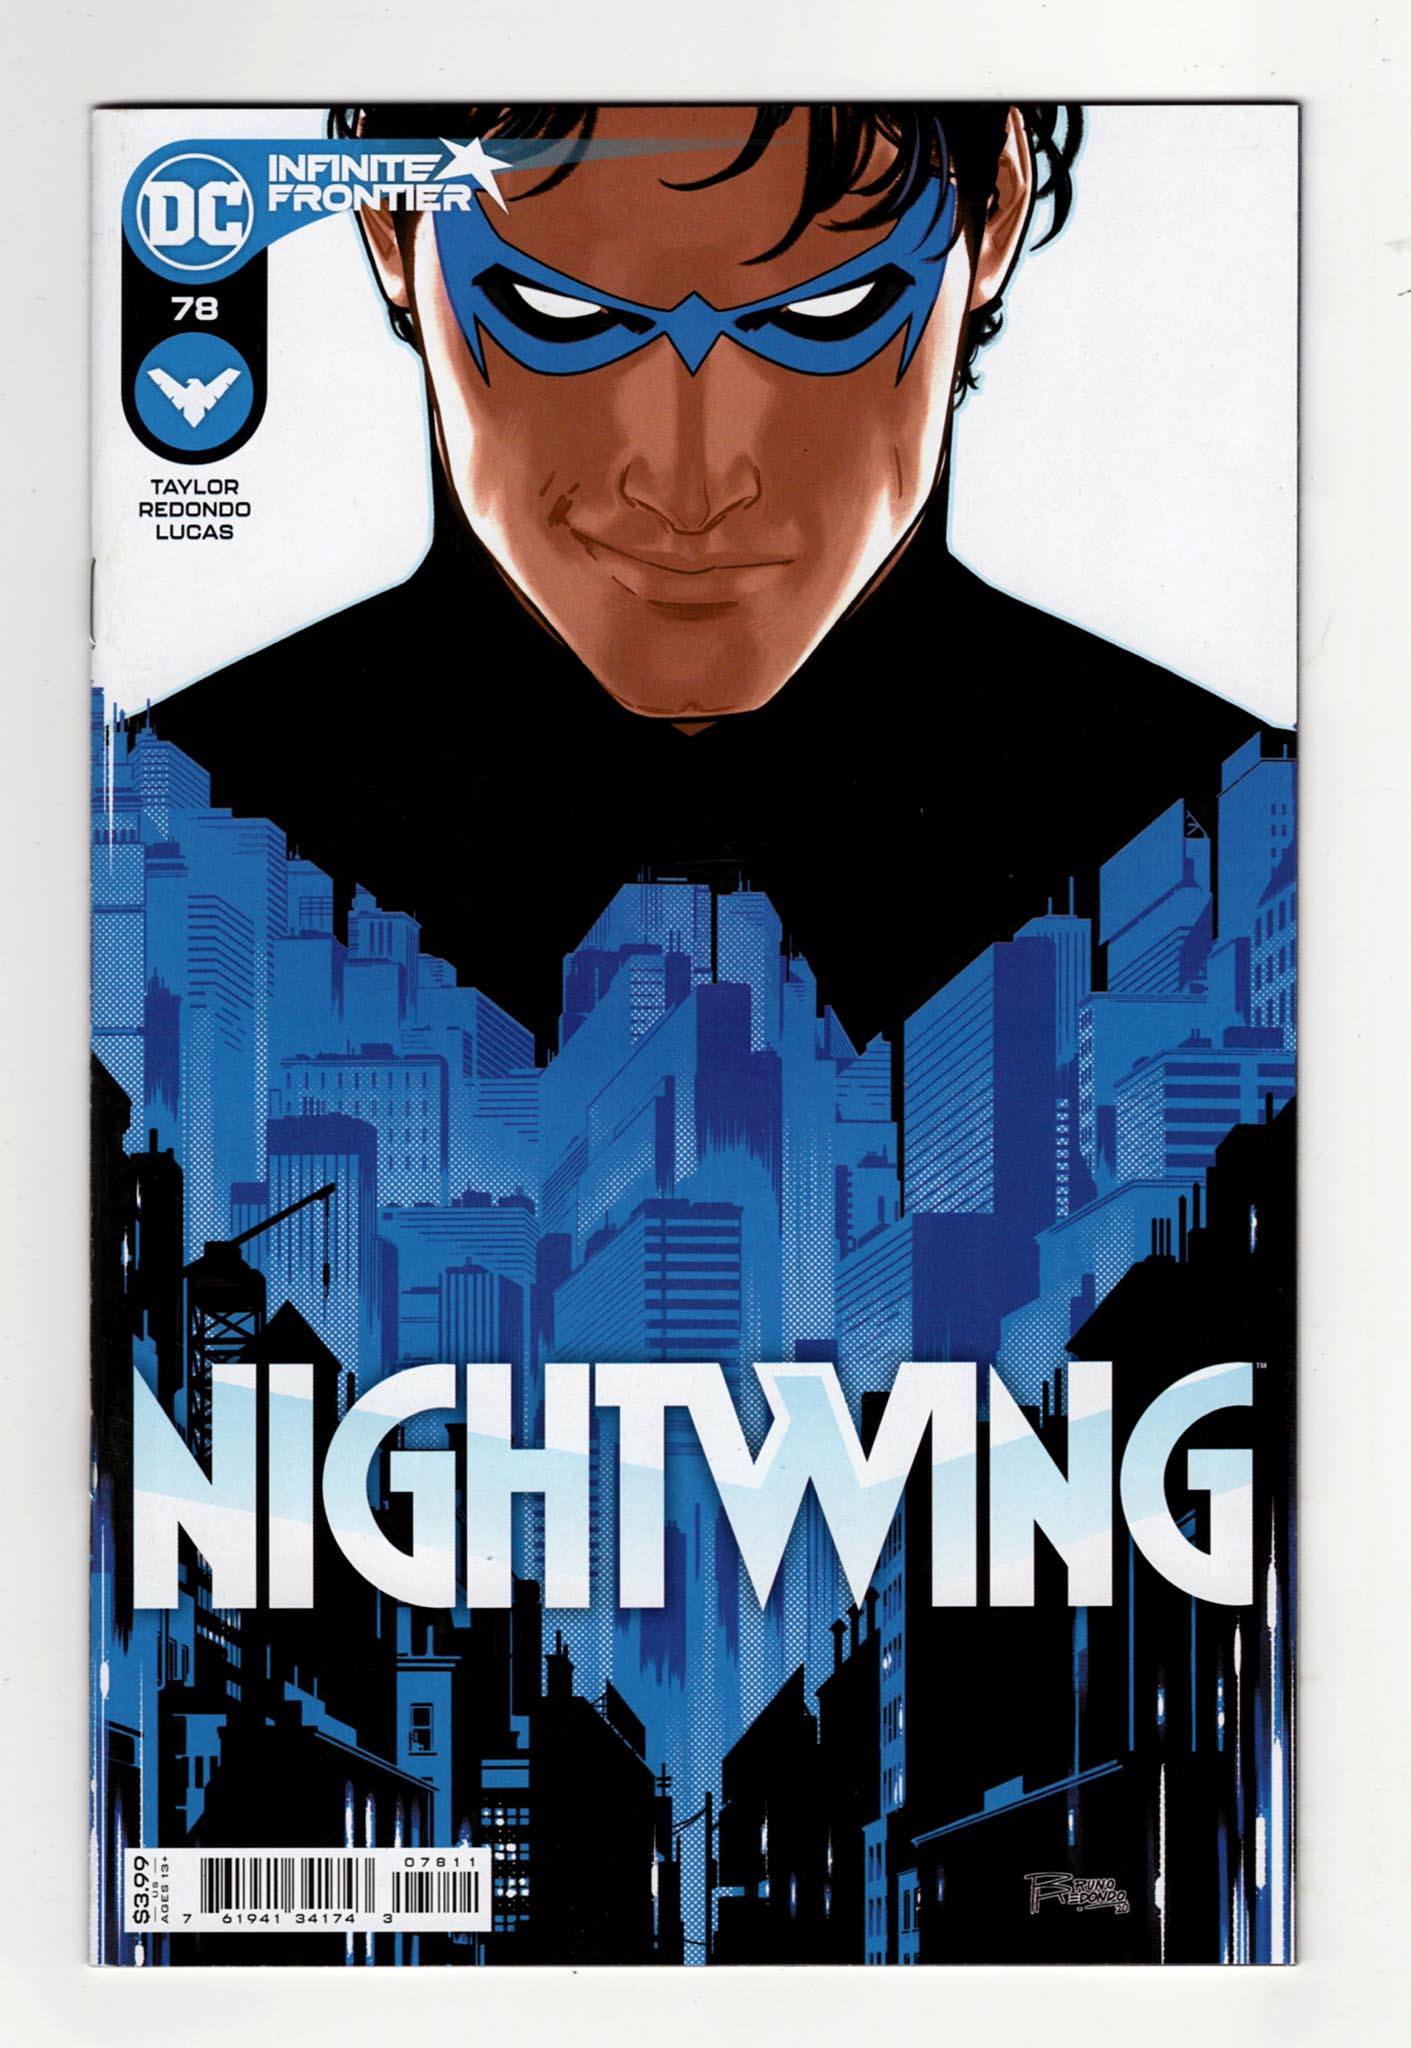 Nightwing 81 (Cover A)—Front Cover | Nightwing Titans | Nightwing and Starfire | Nightwing and Robin